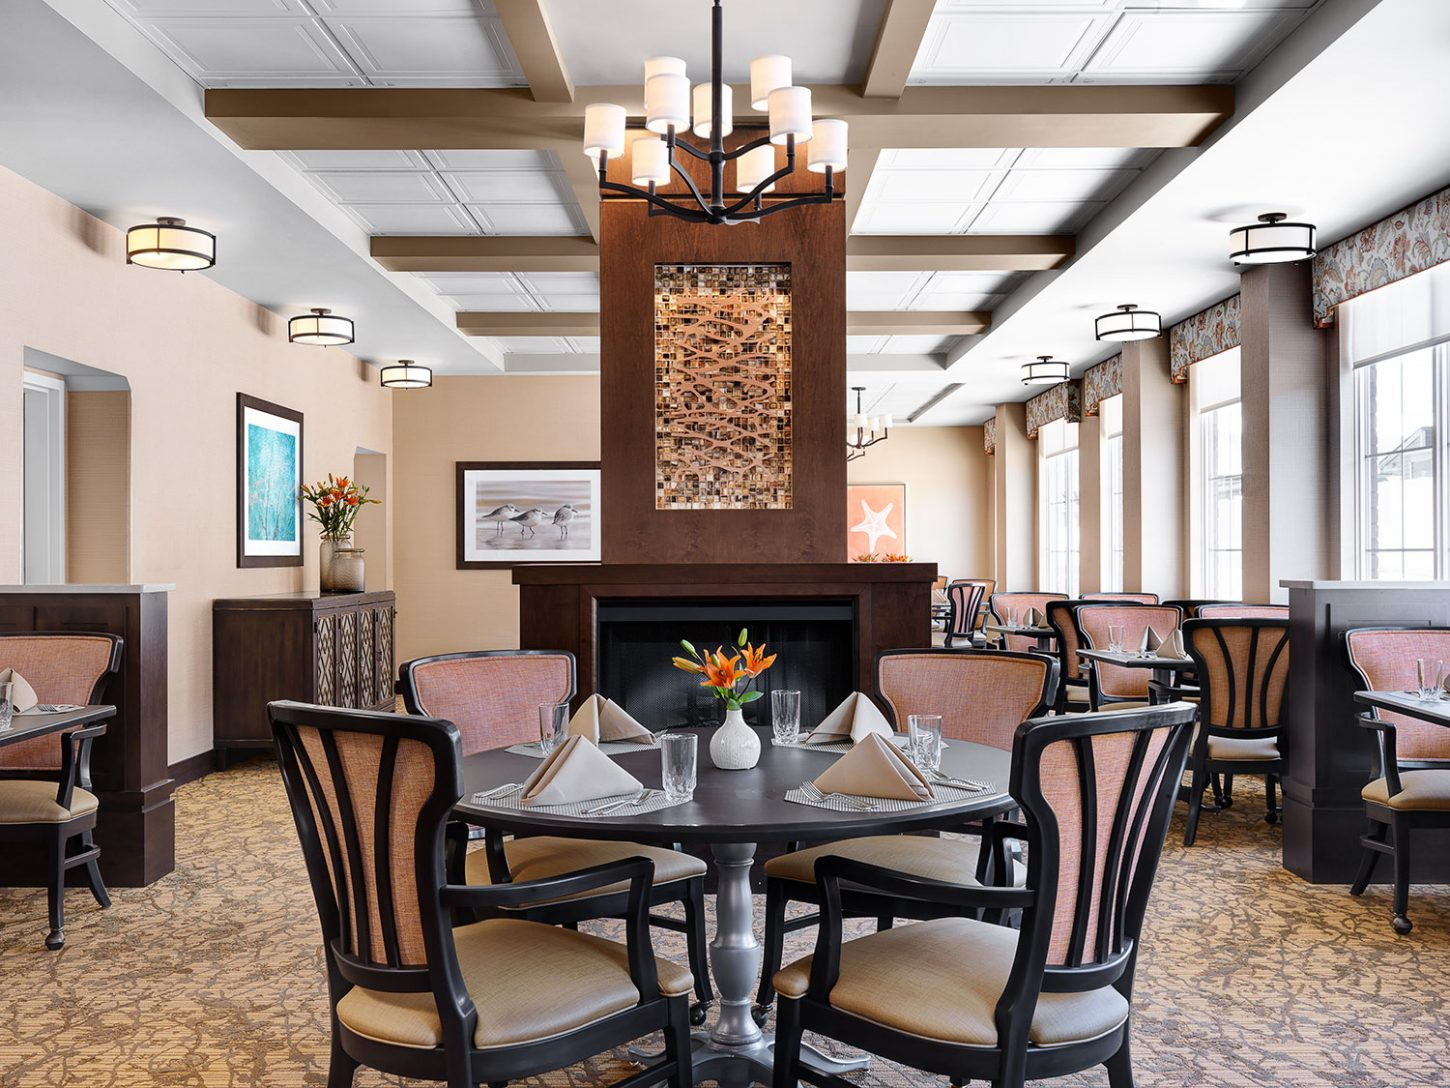 Senior Living Interior Design Furniture Procurement Art Dining